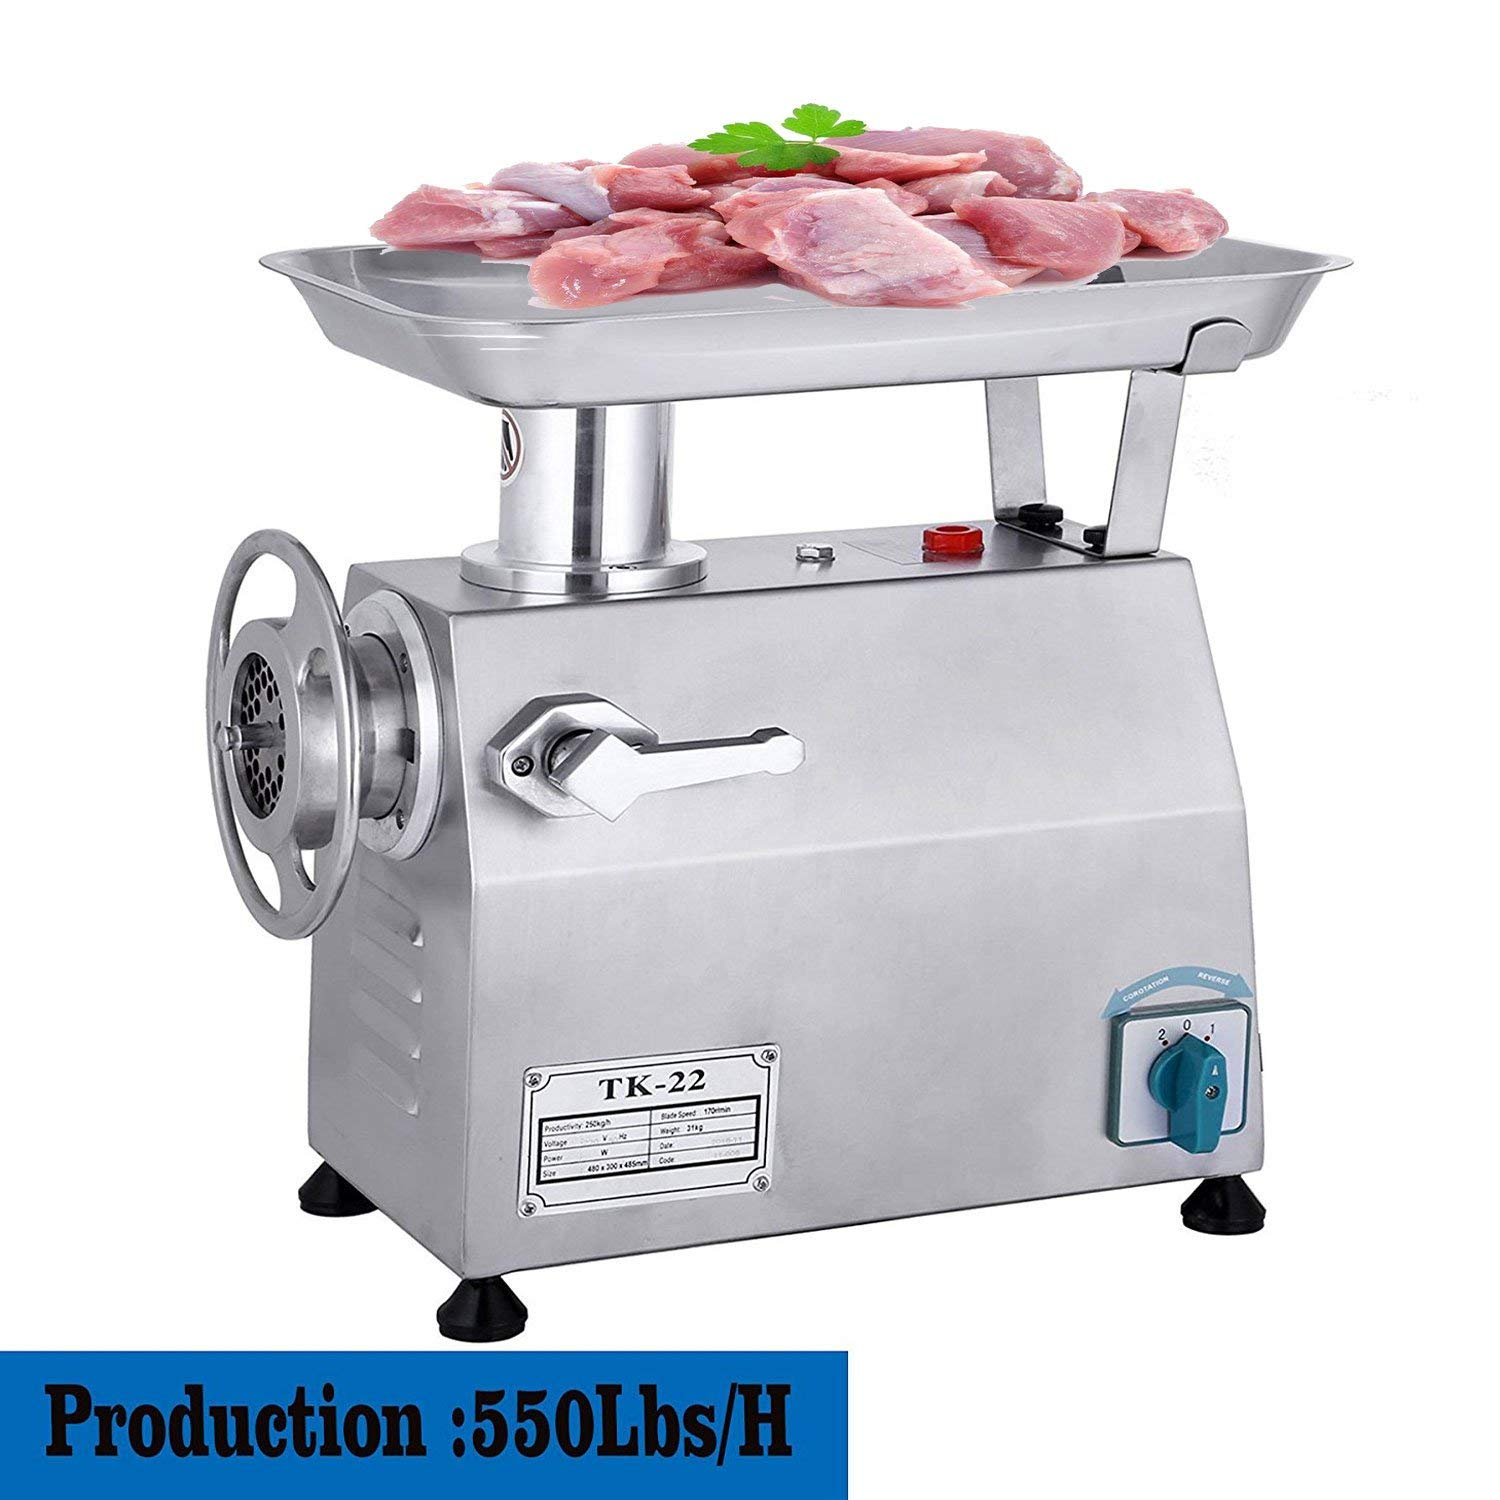 Happybuy 1.13HP Meat Grinder